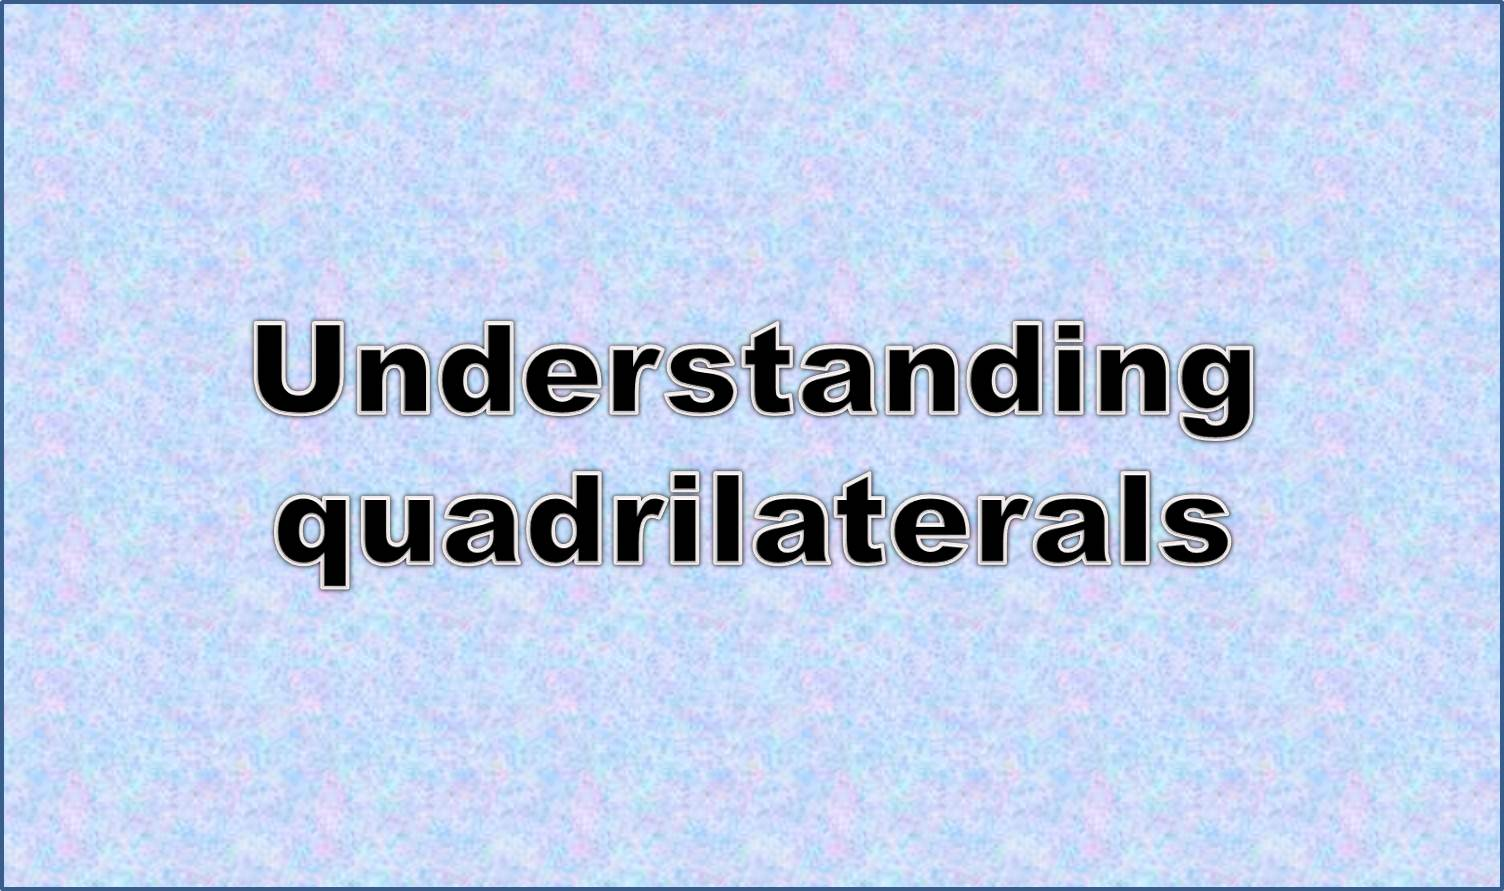 http://study.aisectonline.com/images/Classifying quadrilaterals.jpg